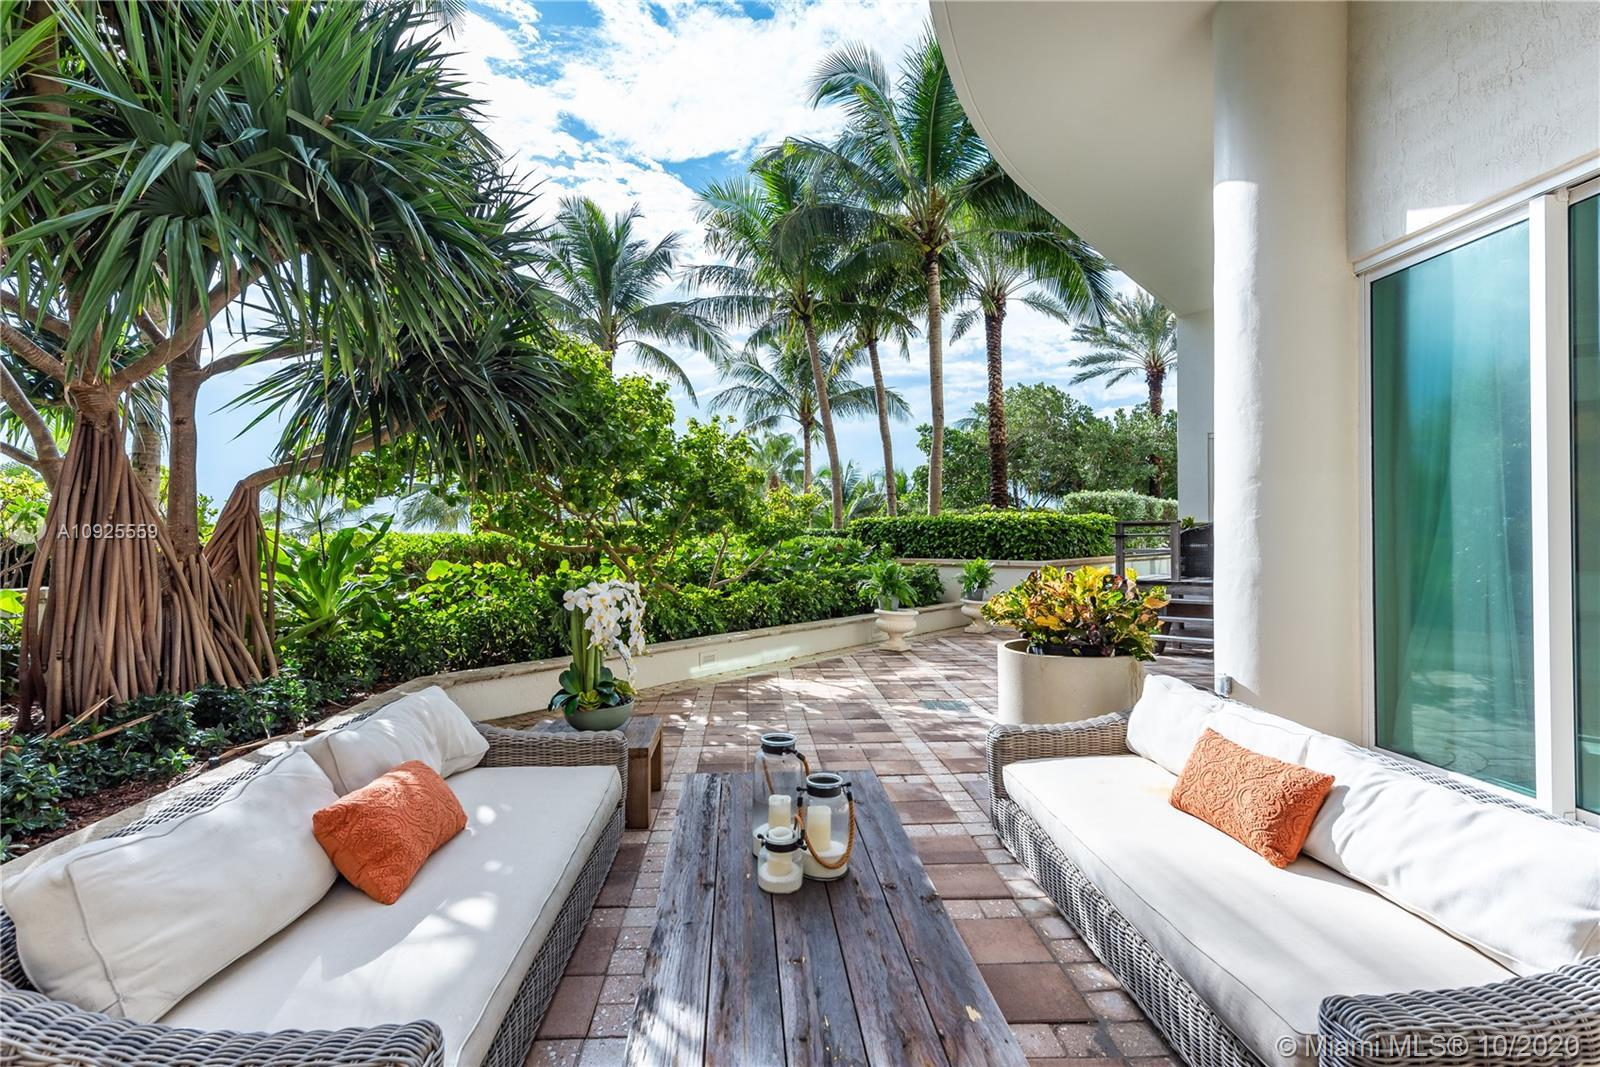 No elevator needed to enter this rarely available lanai unit in the North tower at prestigious Turnb